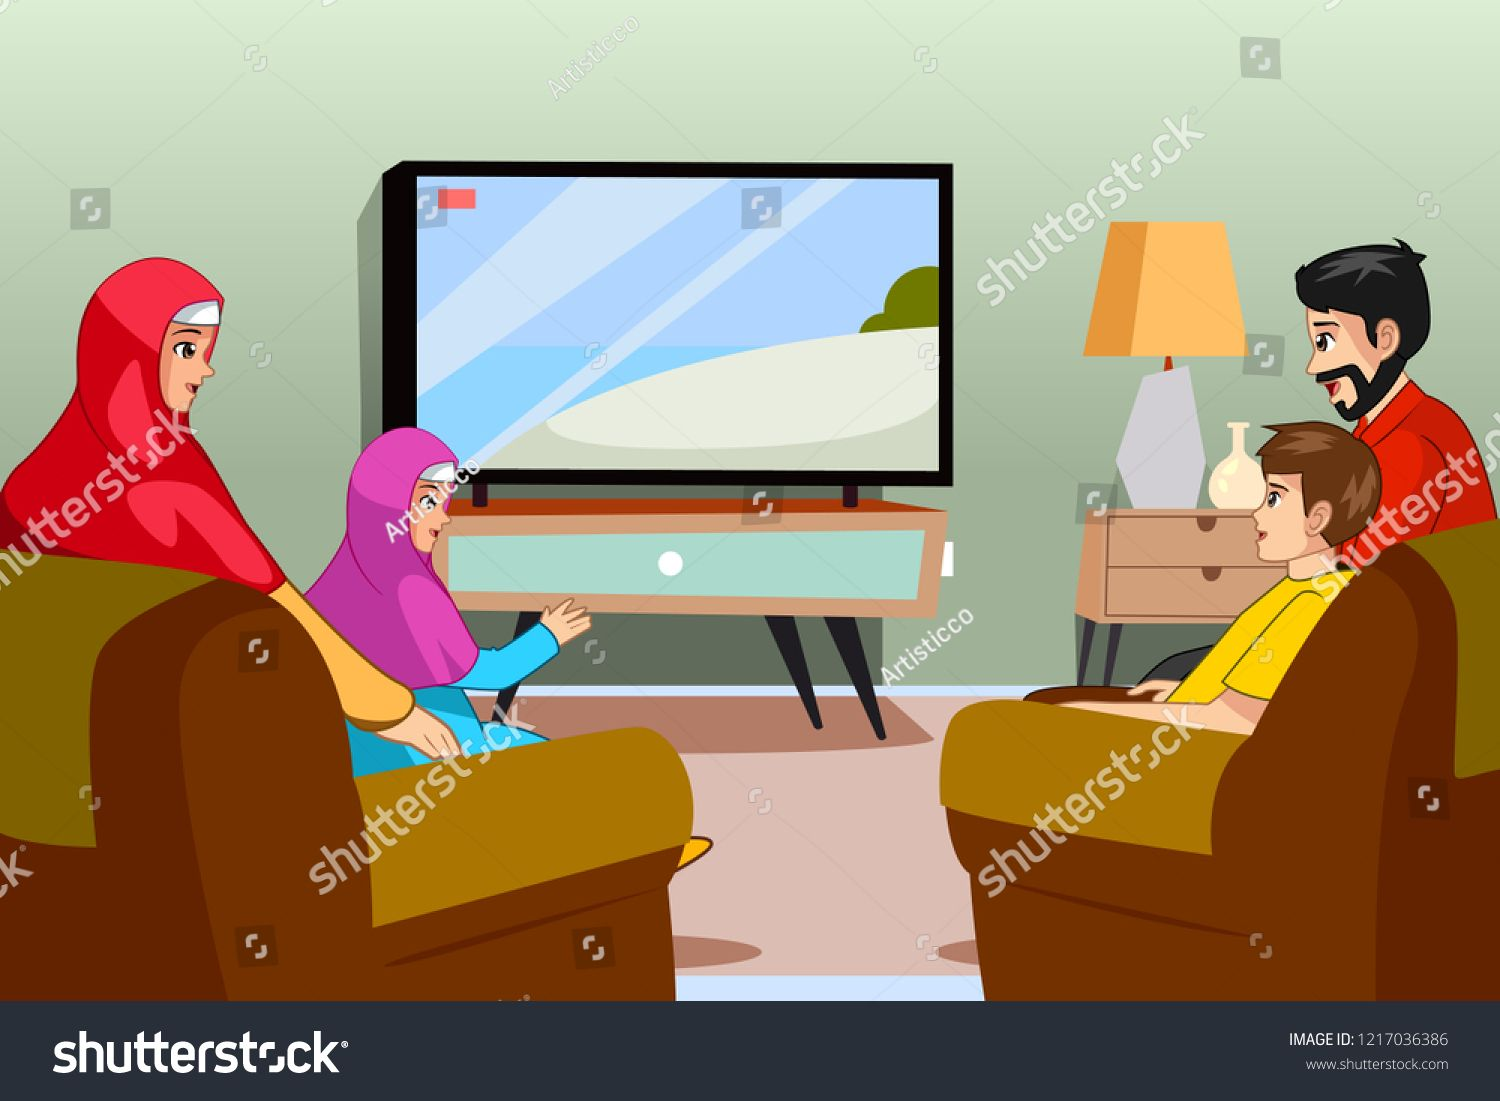 A Vector Illustration Of Muslim Family Watching Tv At Home Ad Ad Muslim Illustration Vector Family Muslim Family Vector Illustration Anime Muslim